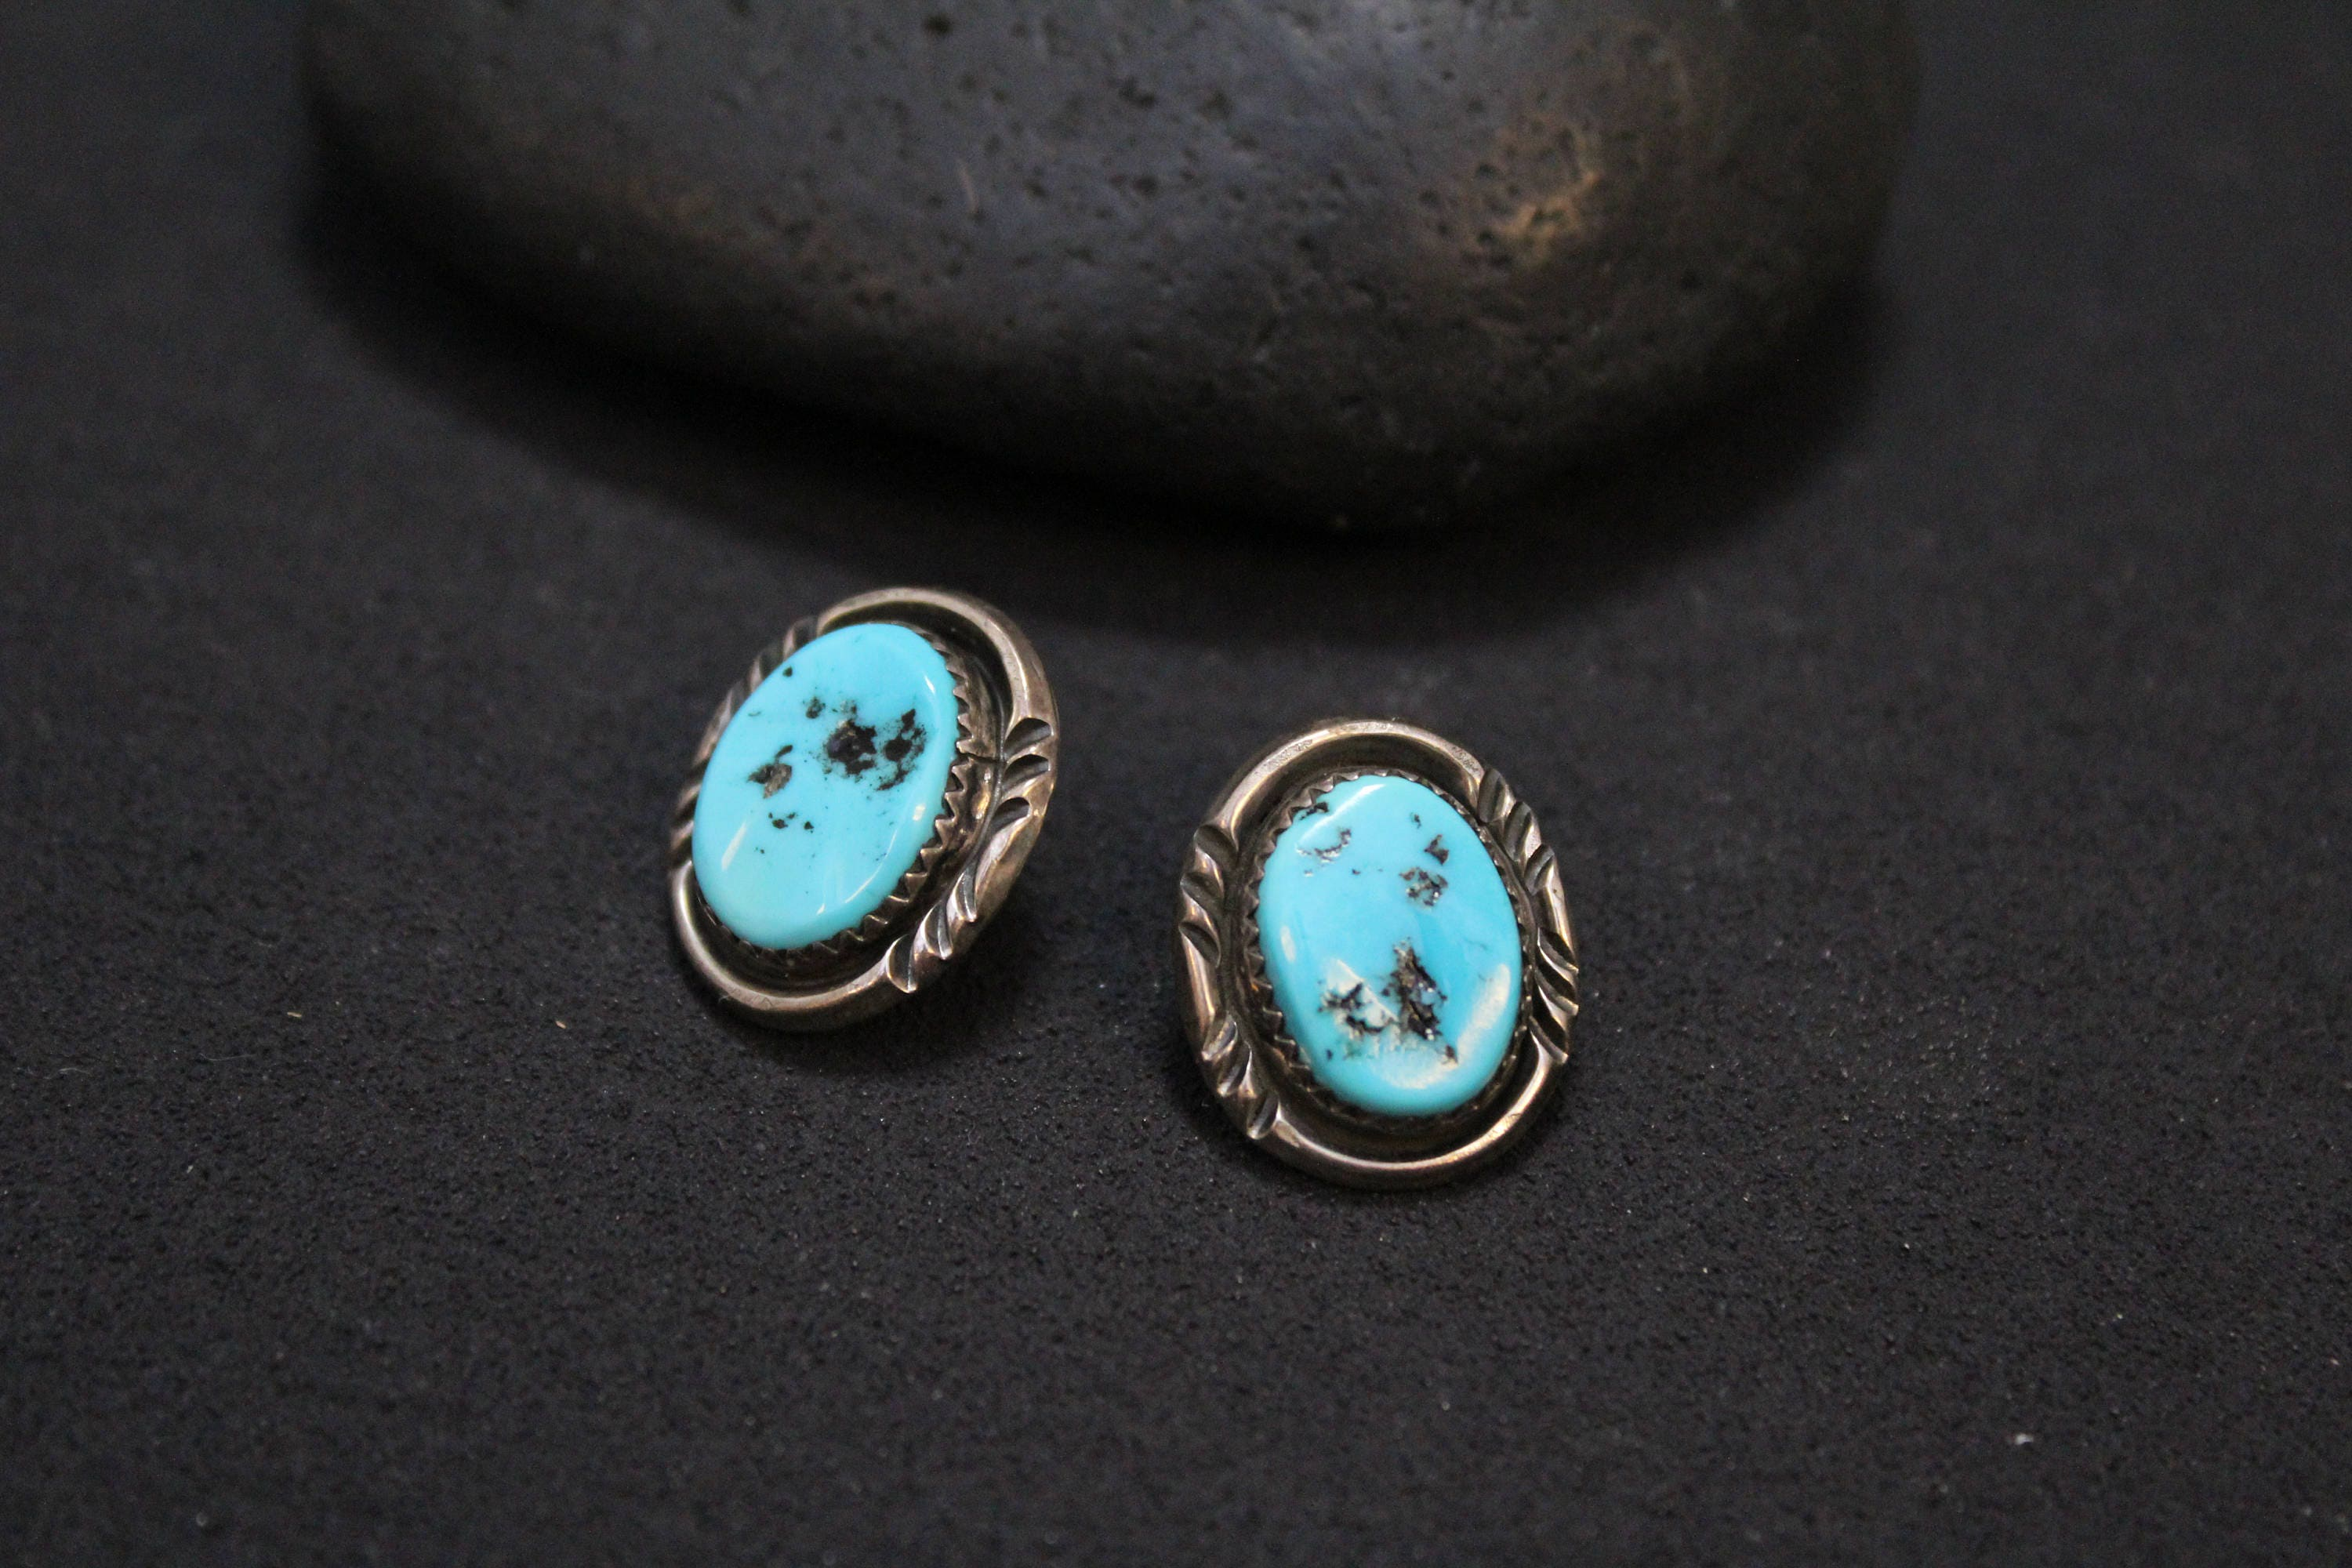 turquoise il set gold style handmade modern p cfkj jewelry earrings rose fullxfull vintage stud earring